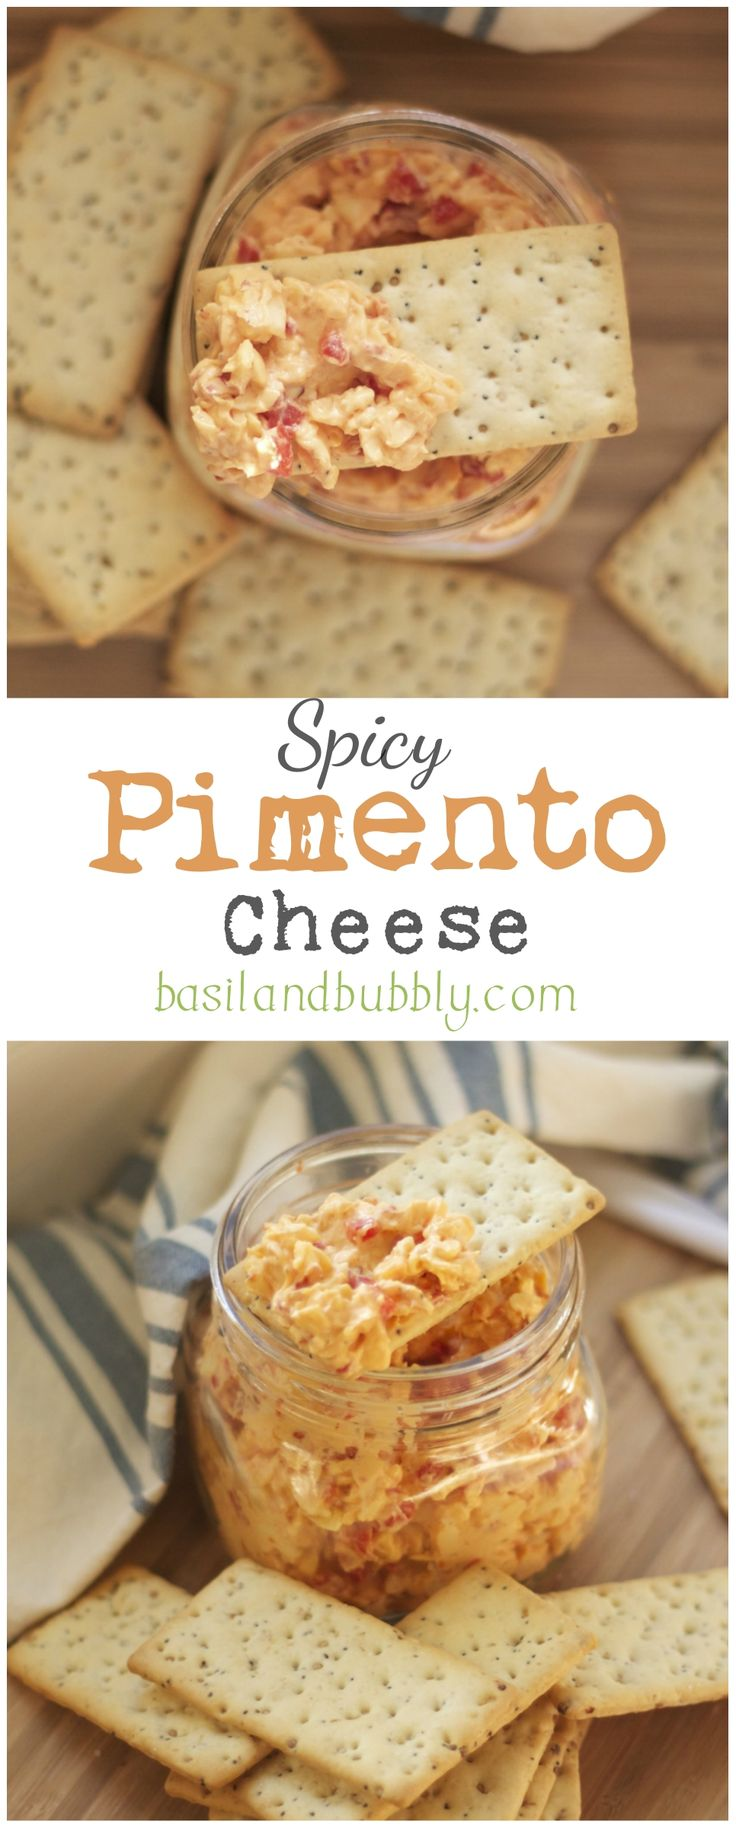 After making this delicious Pimento Cheese, I'll NEVER buy the stuff in the tub again!!!